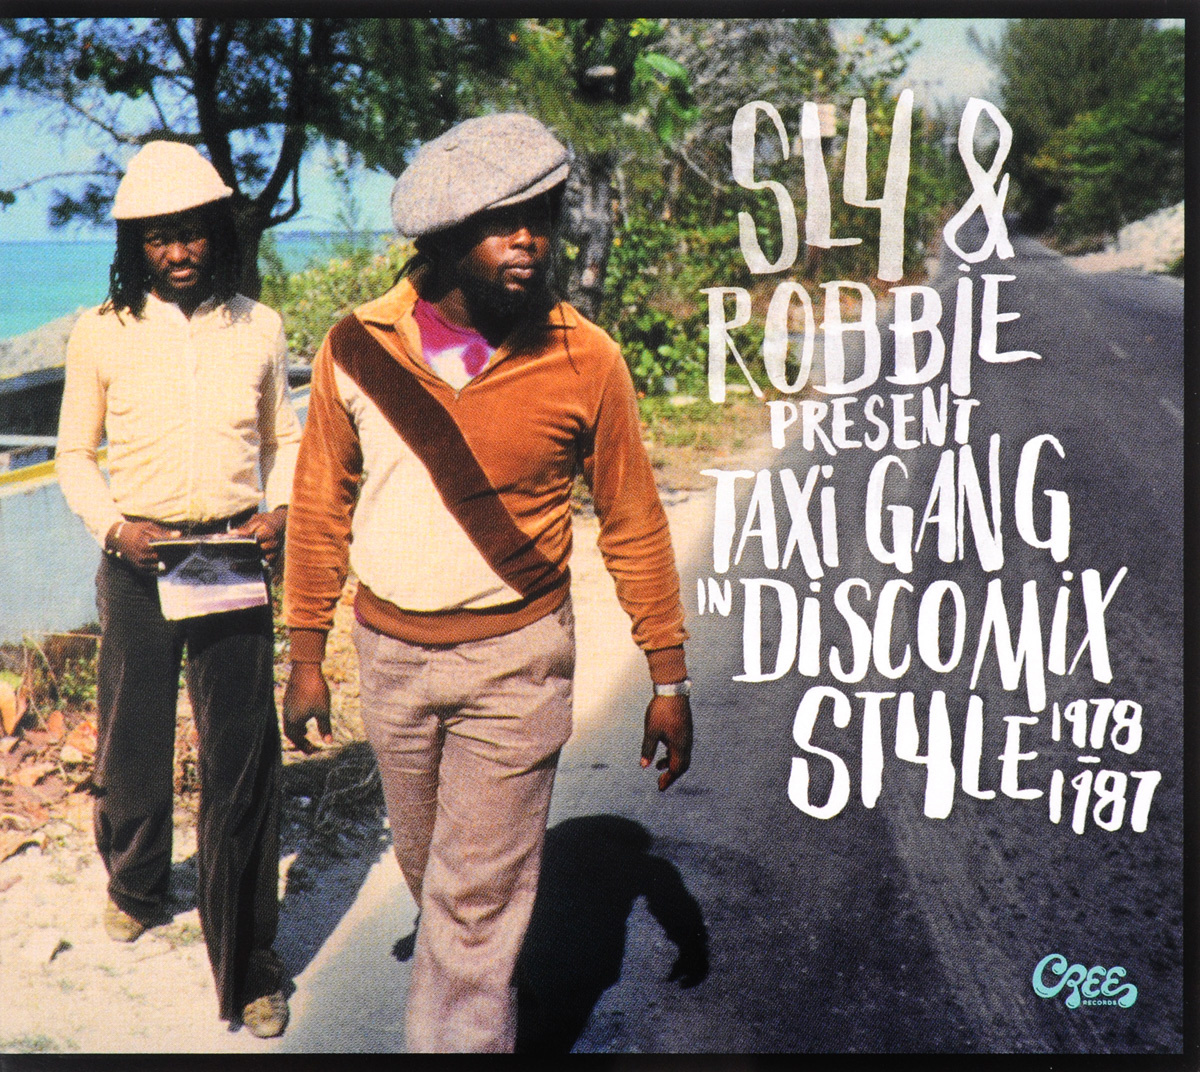 Sly & Robbie Present Taxi Gang In Disco Mix Style 1978-1987 #1